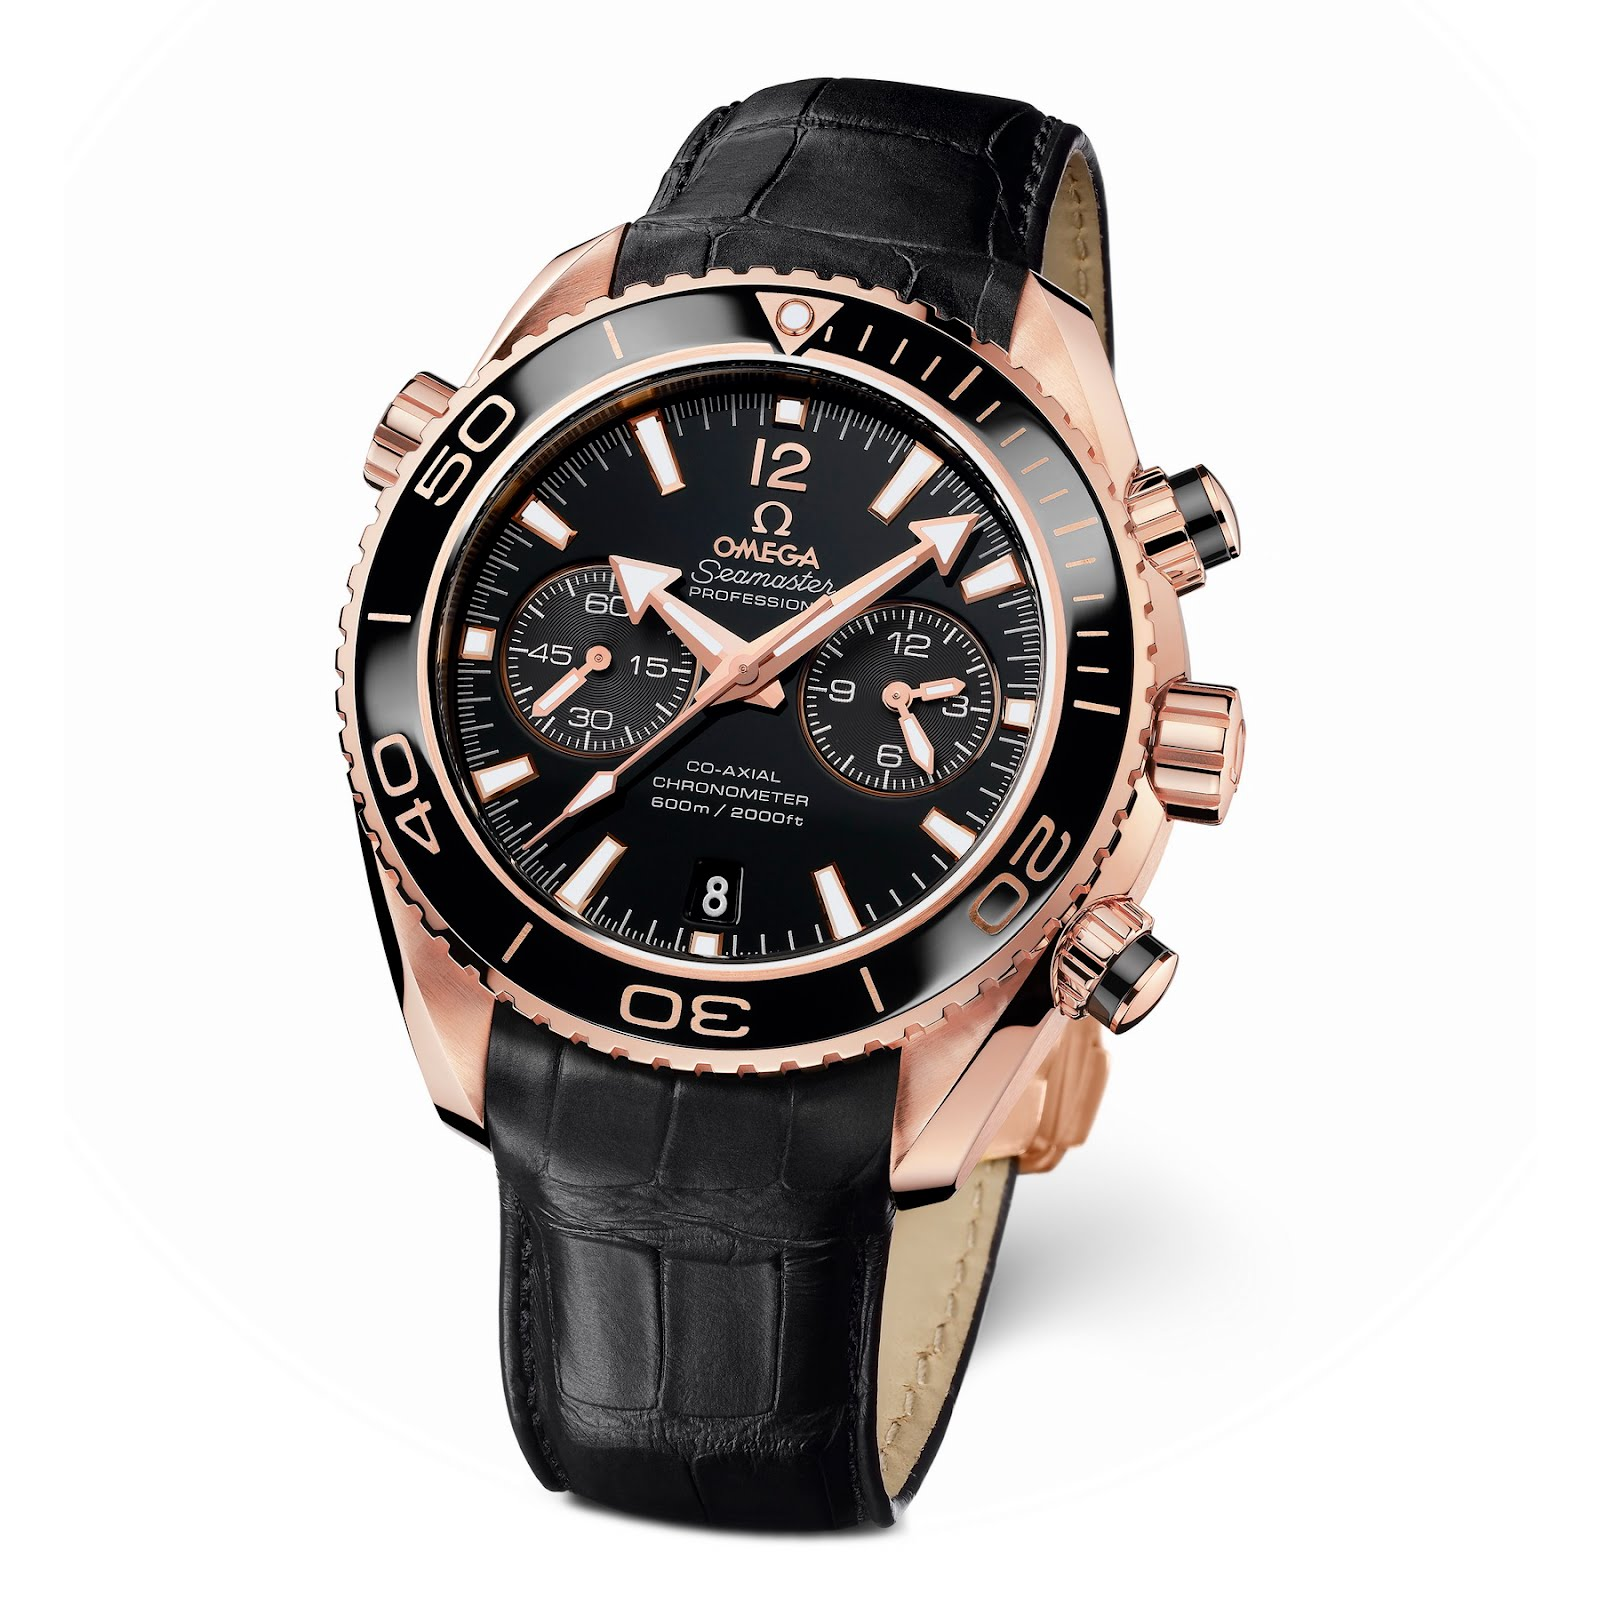 OMEGA Seamaster Planet Ocean CERAGOLD  - Luxury Watches aa150a0a9b